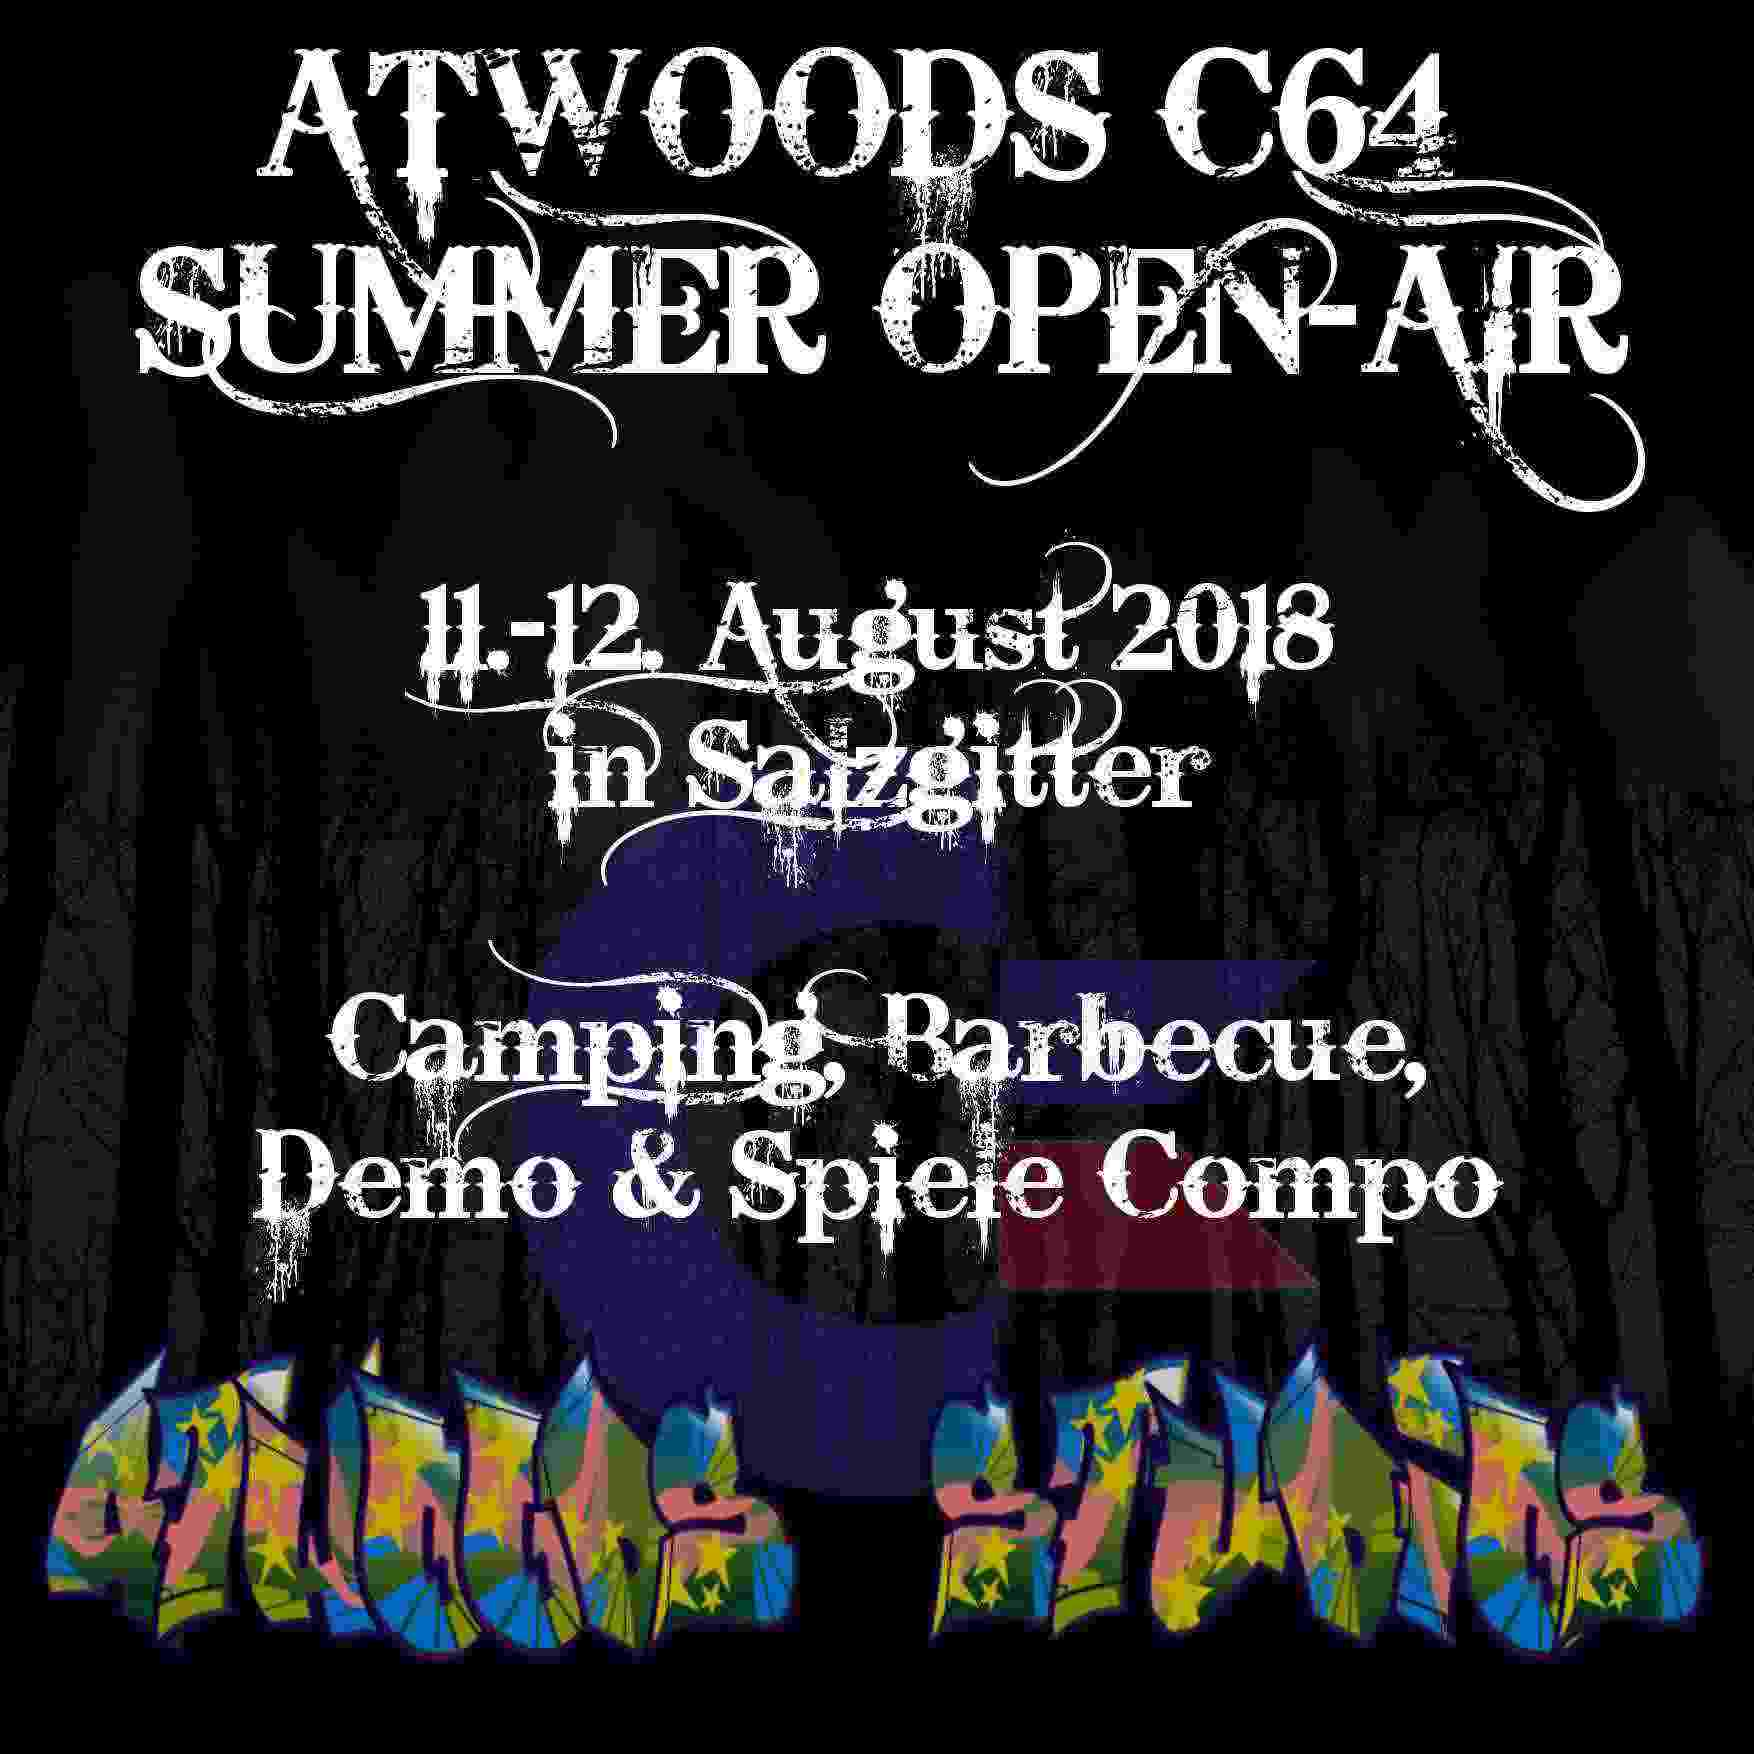 ATWOODS C64 Summer Open-Air